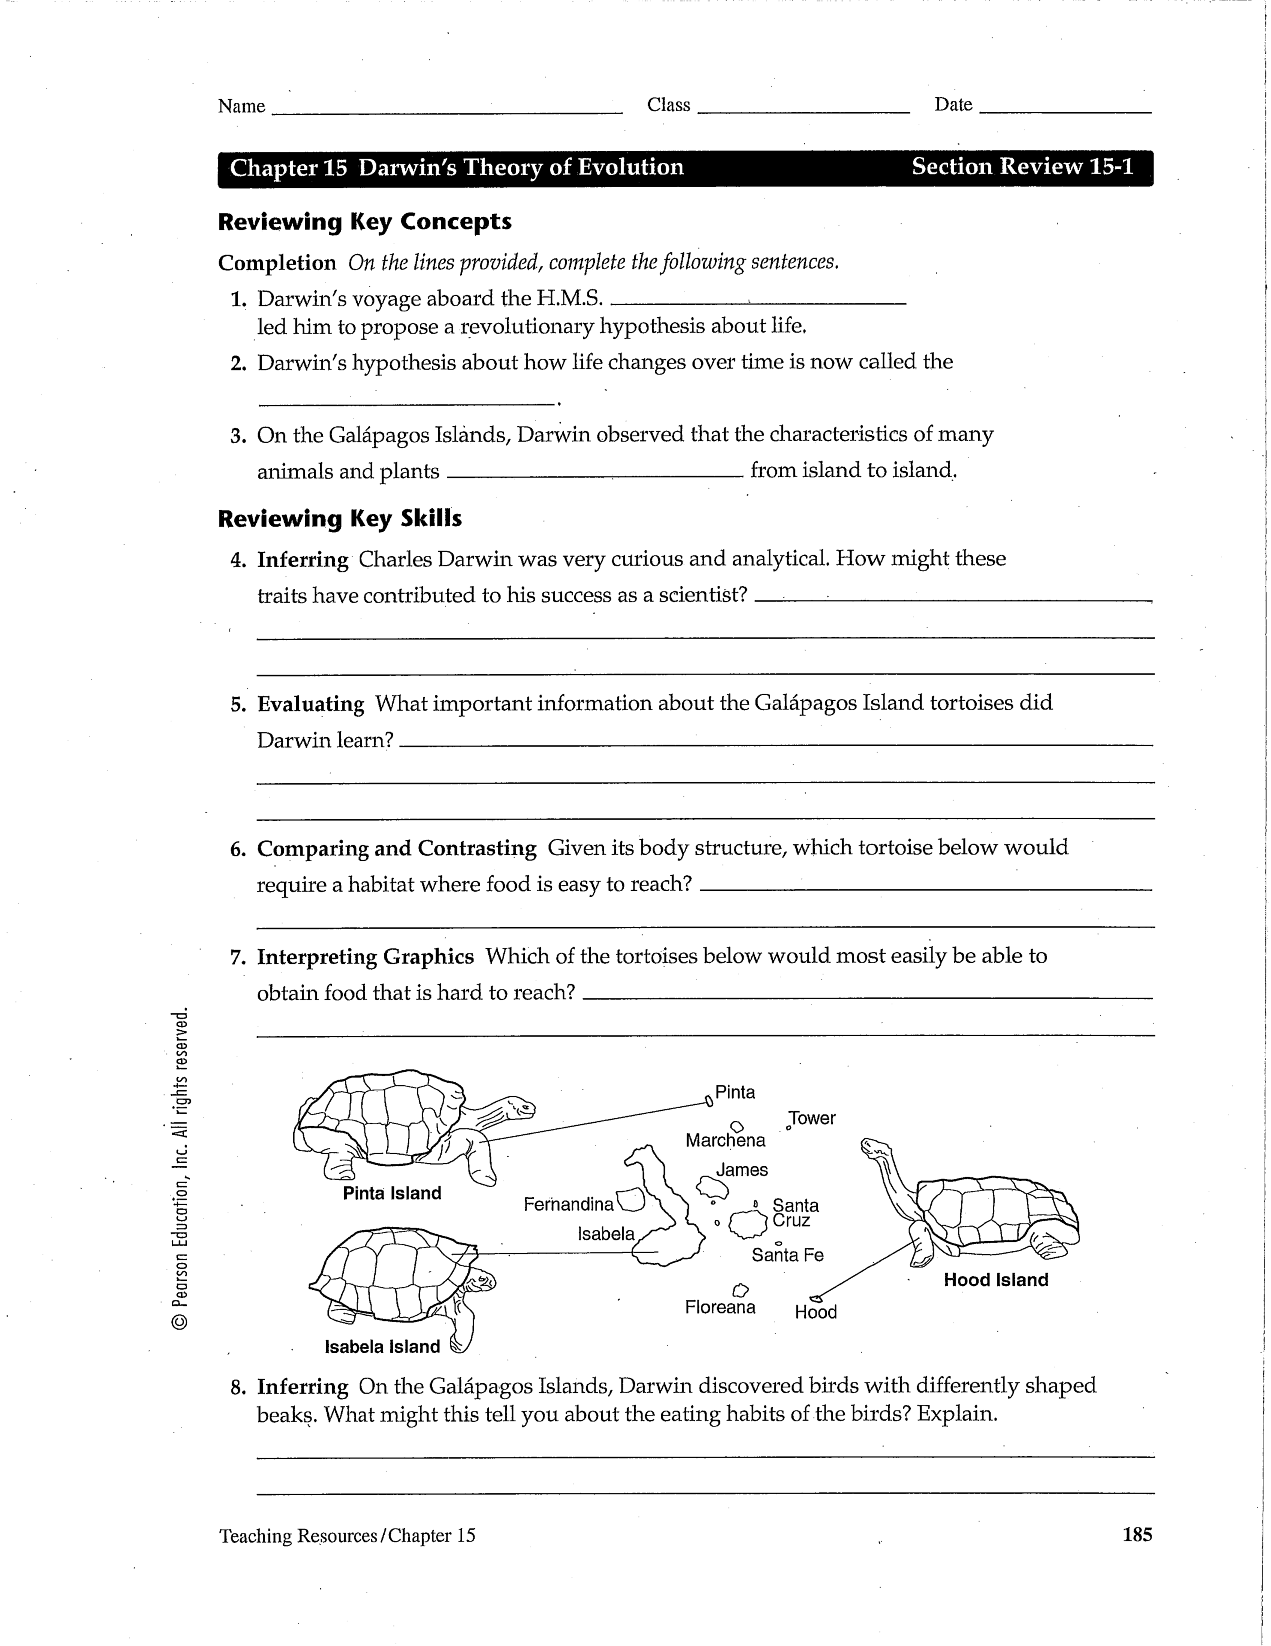 Theory Of Evolution Chapter 15 The Theory Of Evolution Worksheet Answers